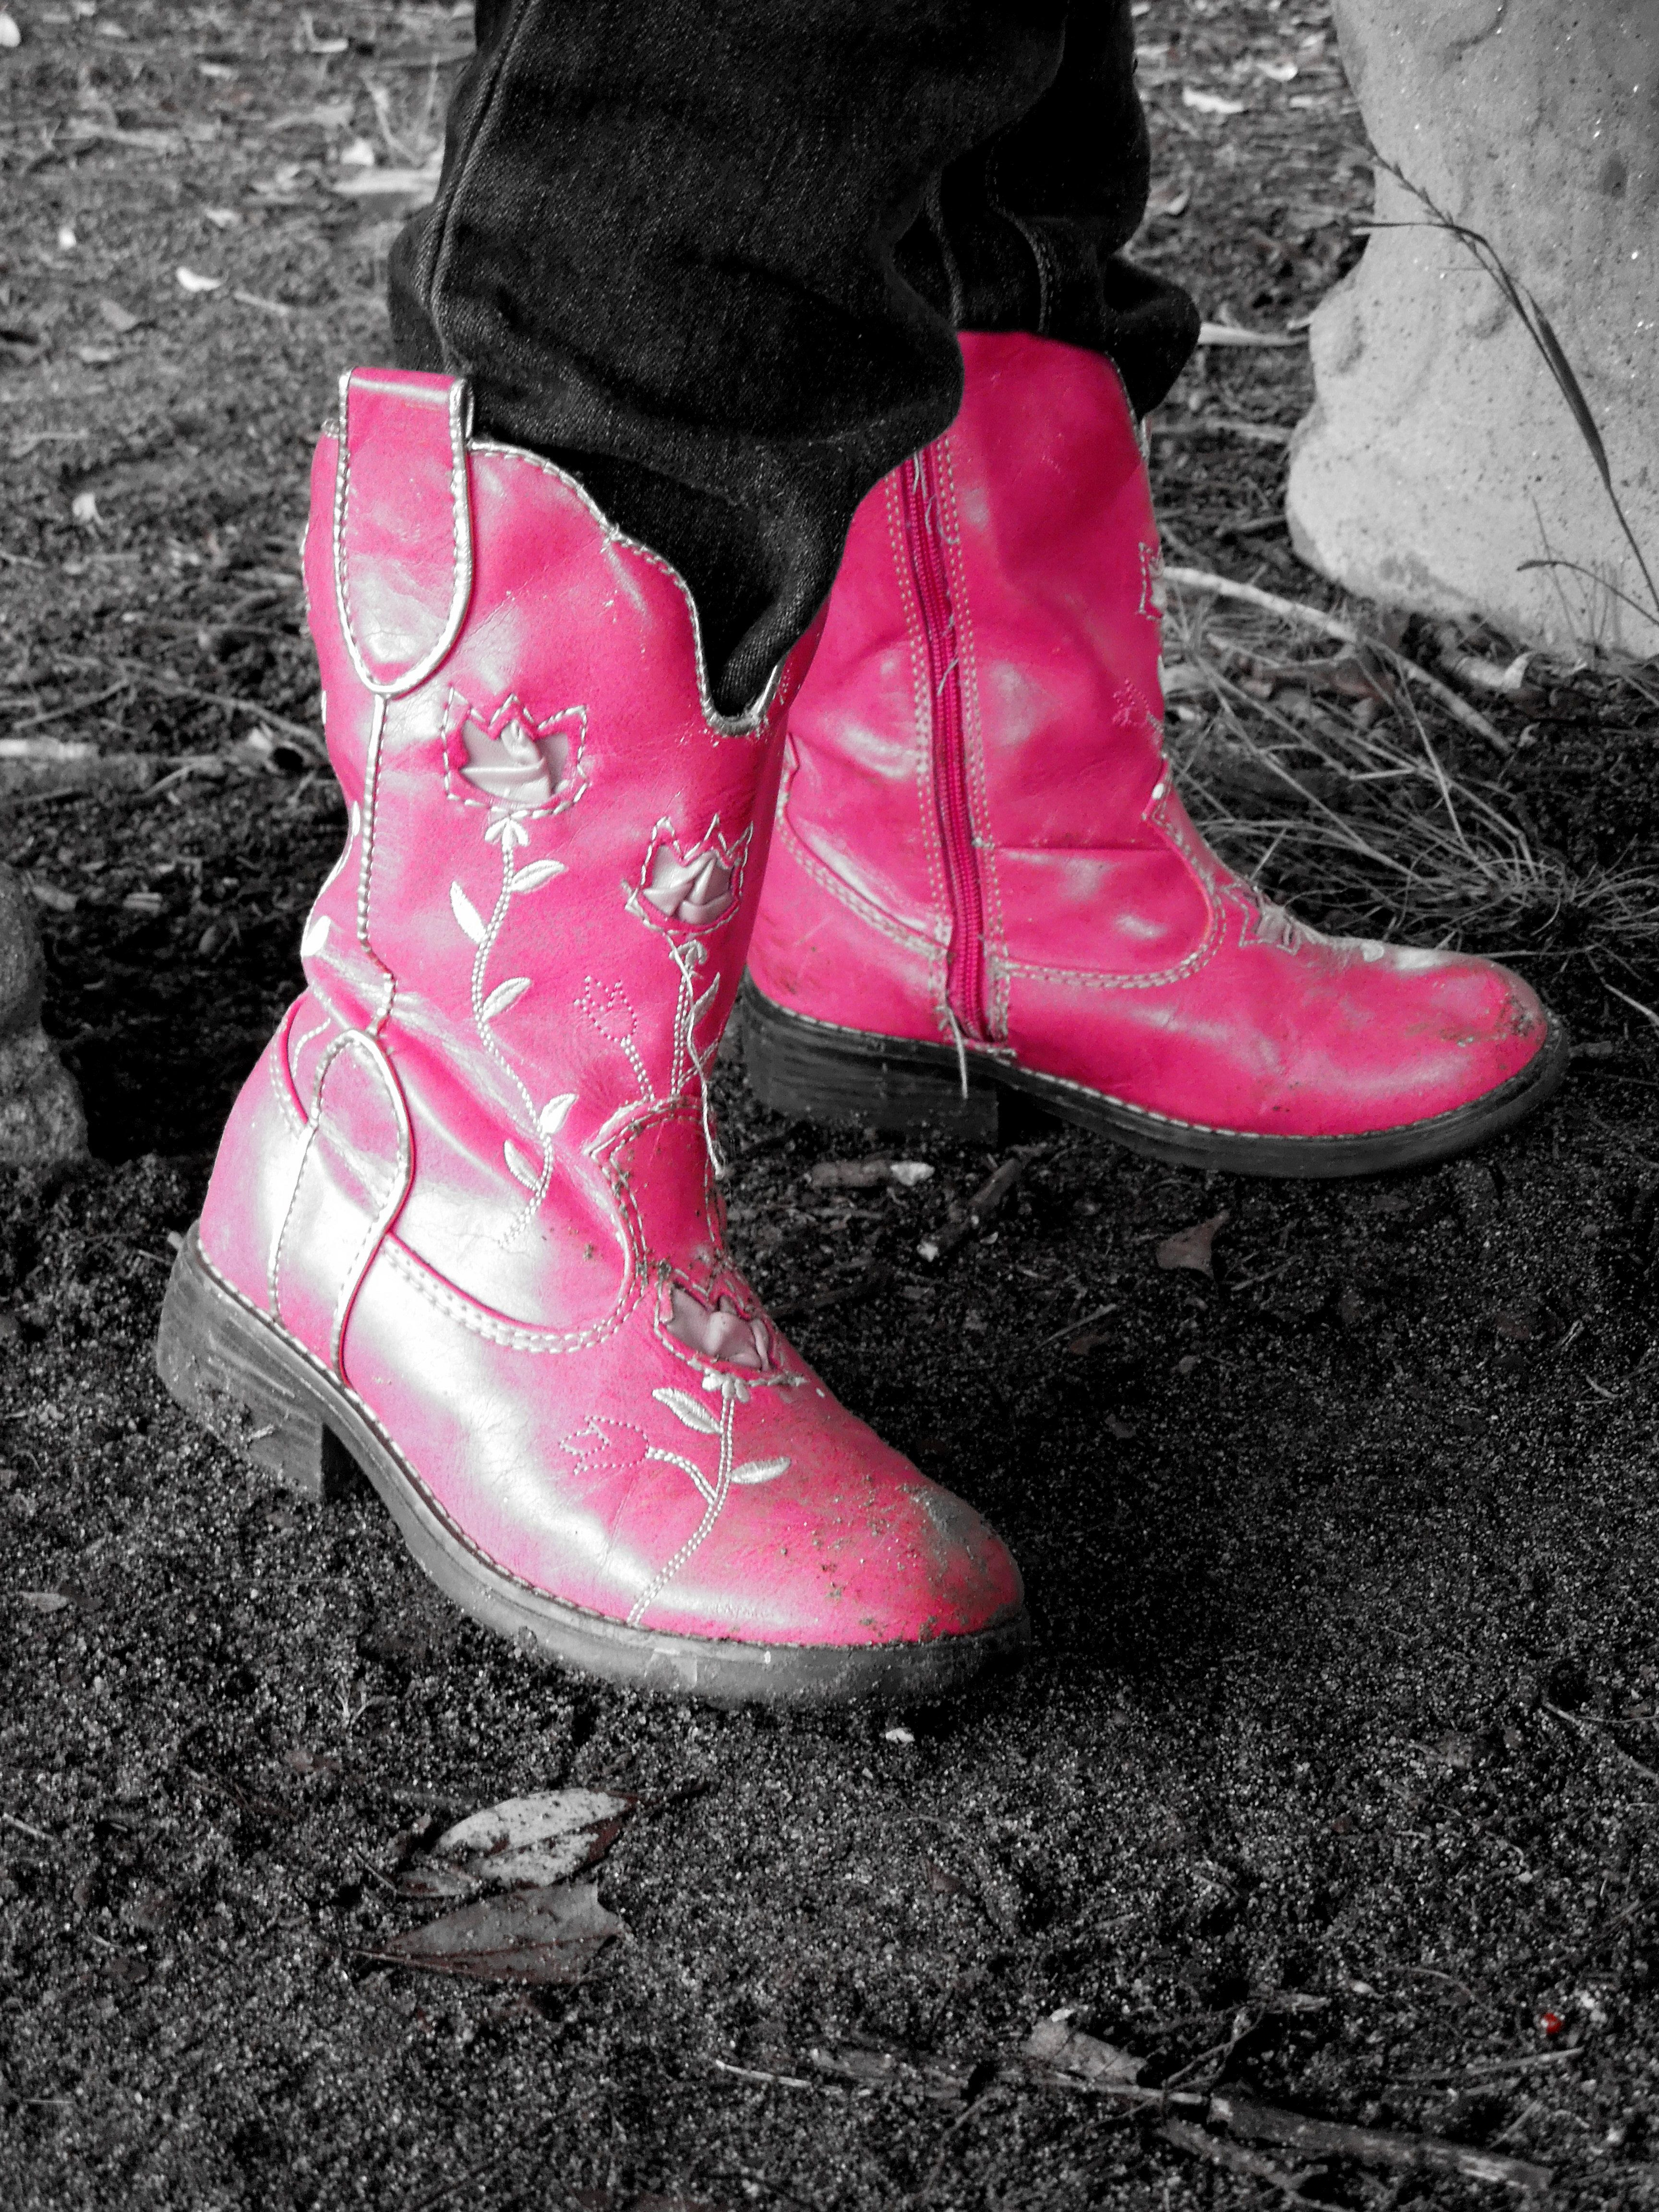 """A young cowgirl's first boots.""  Photo by Meg Coker."